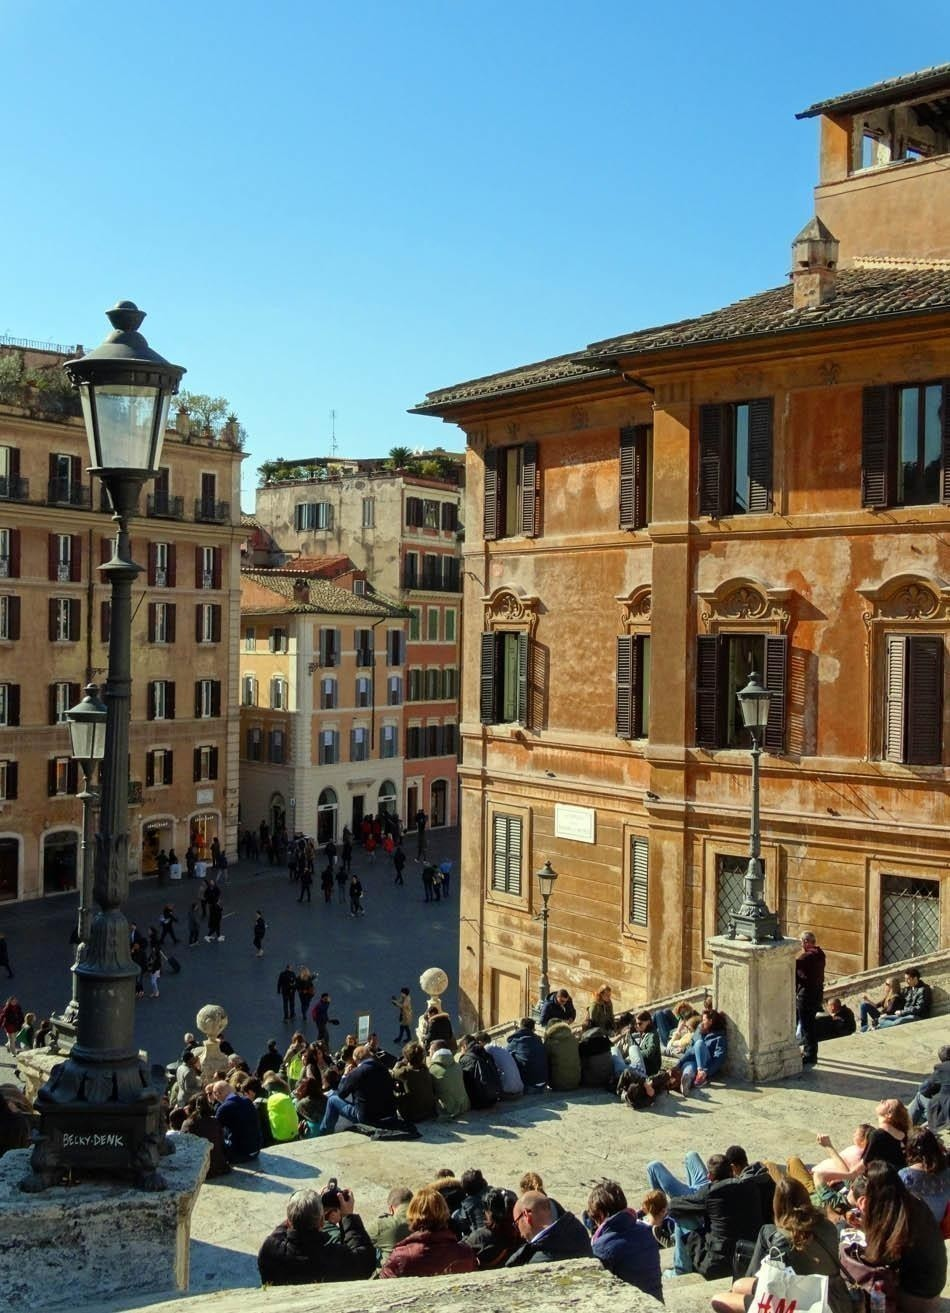 Spanish Stairs, Rome Italy  Top Ten Free Things to Do in Rome, Italy